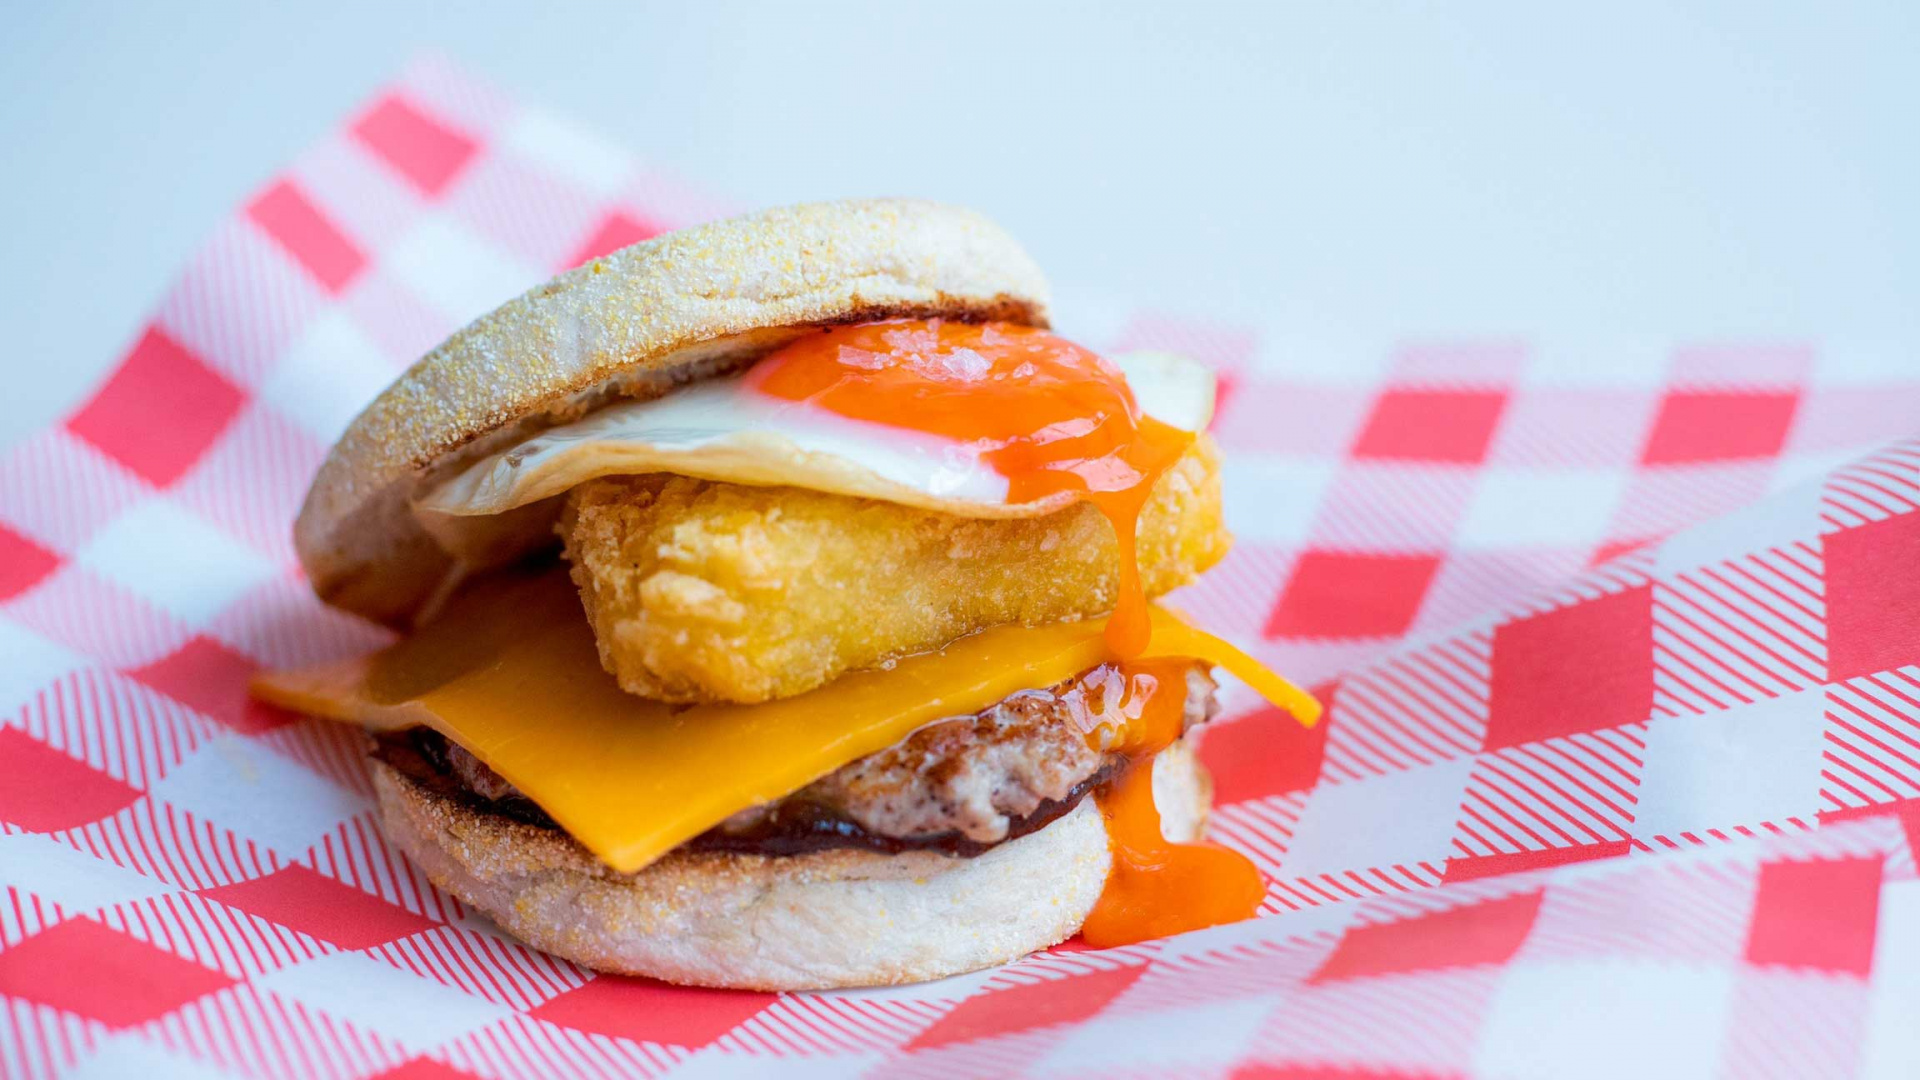 London's best sandwiches | Norman's Cafe, Tufnell Park